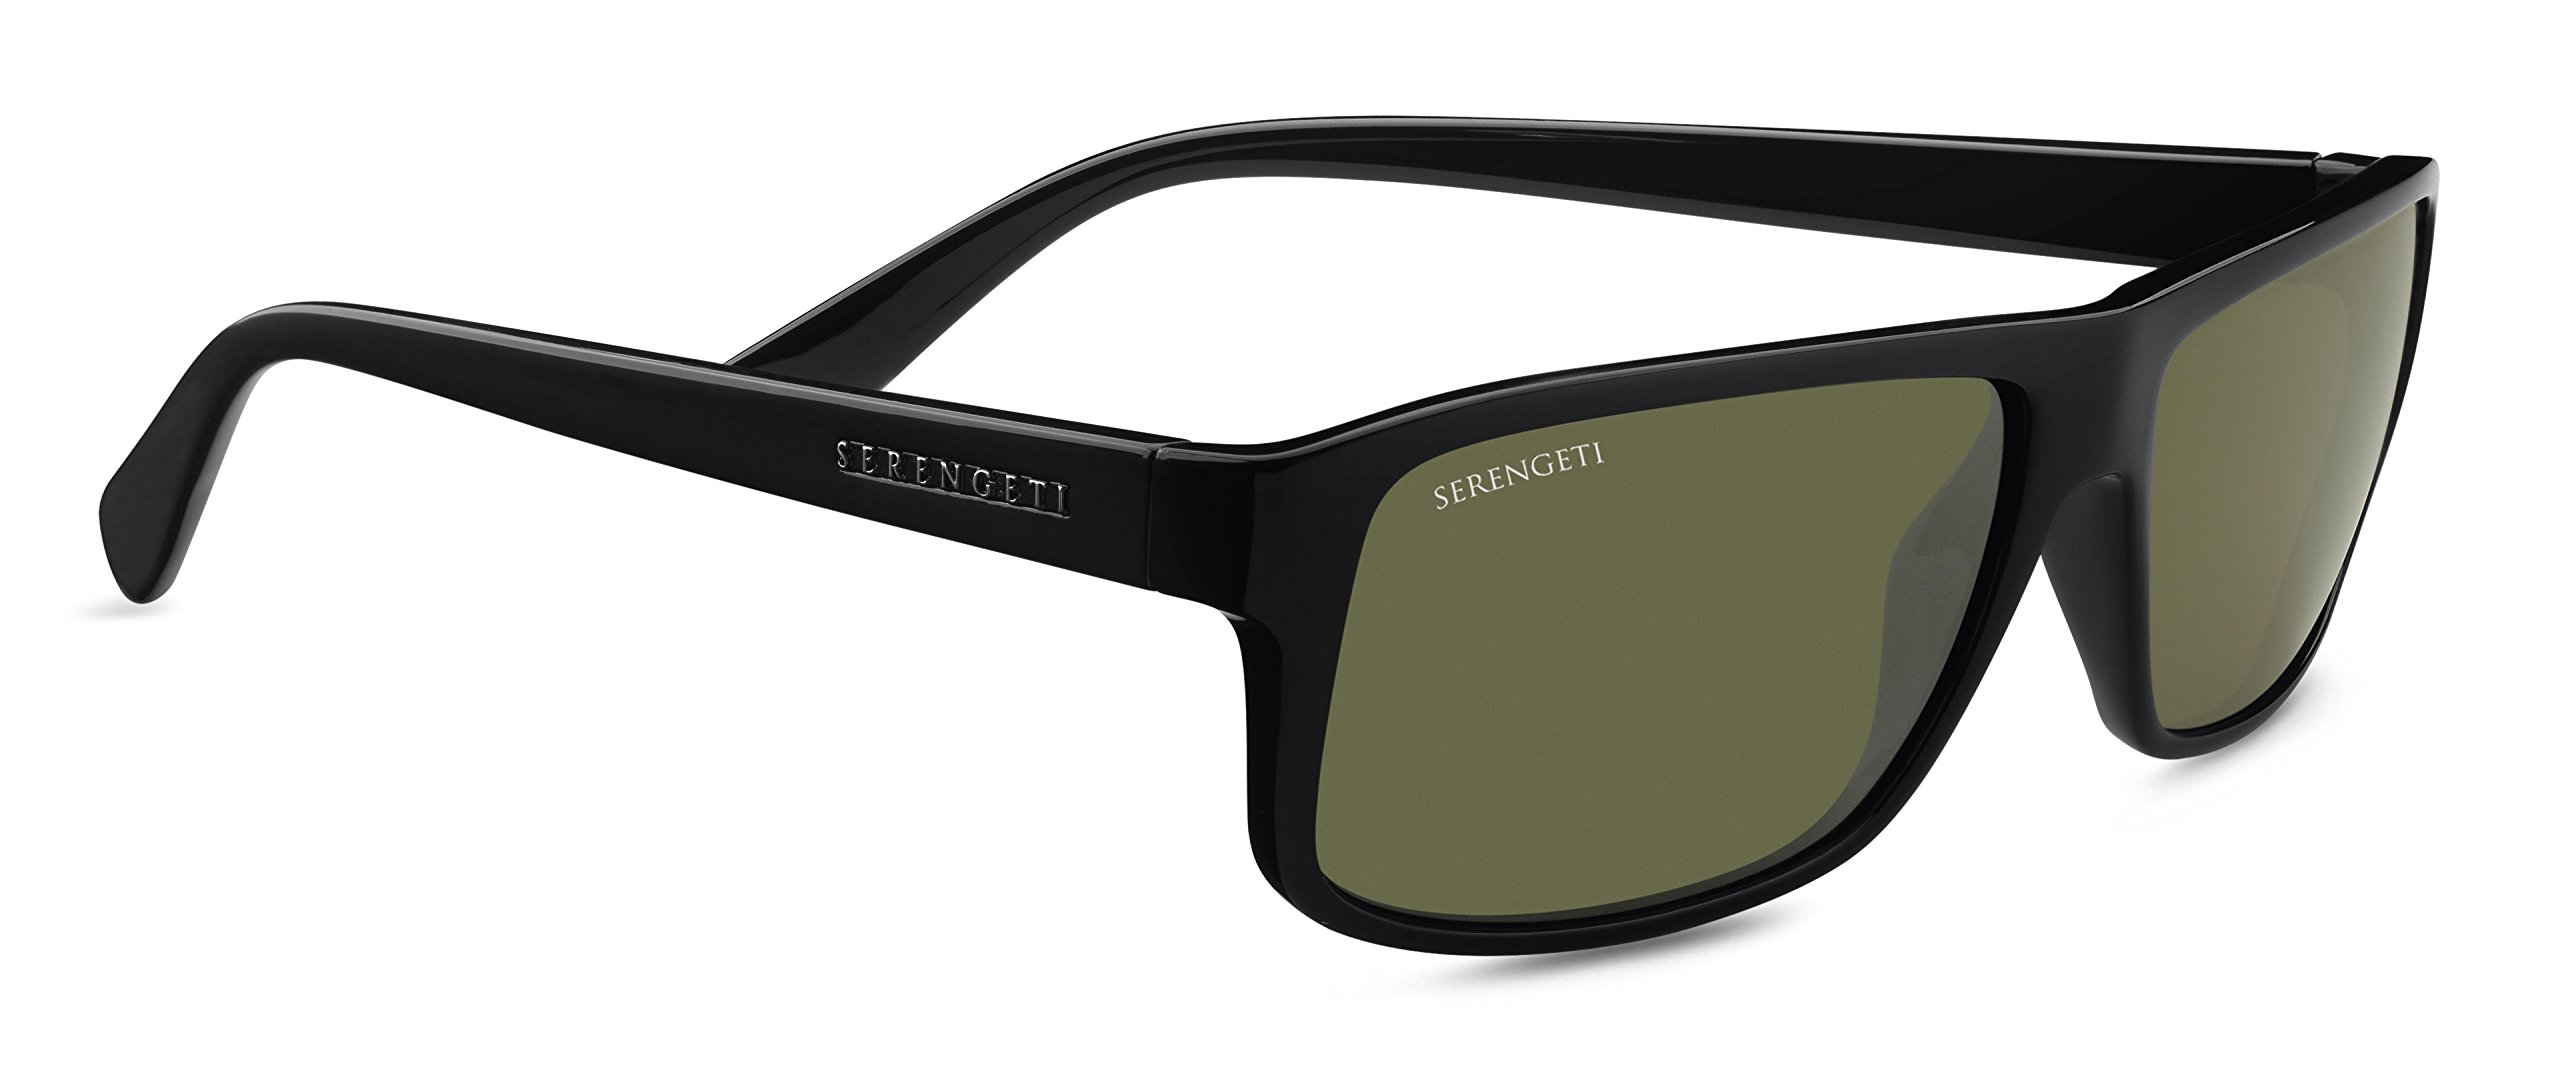 Serengeti 7949 Claudio, Shiny Black Frame, Polarized 555nm Lens